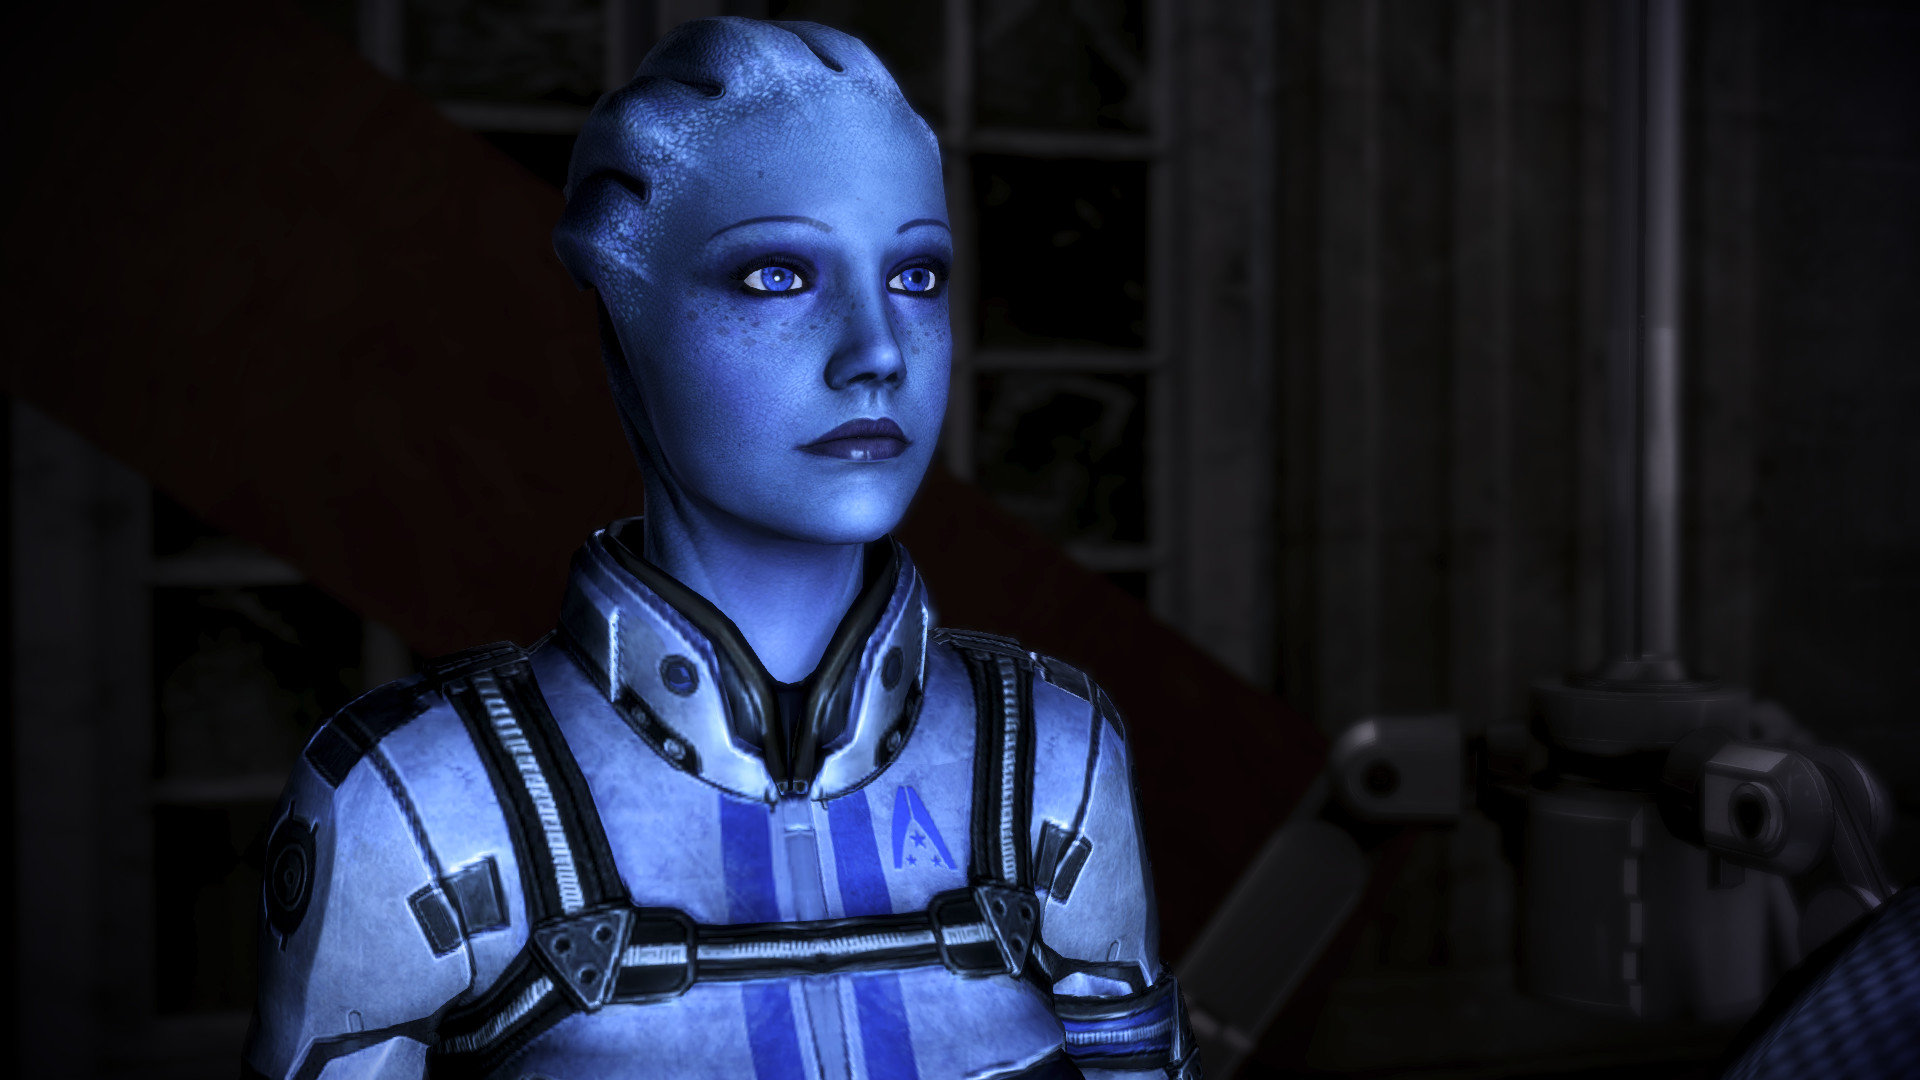 Best Liara Tsoni Wallpaper Id457932 For High Resolution Hd